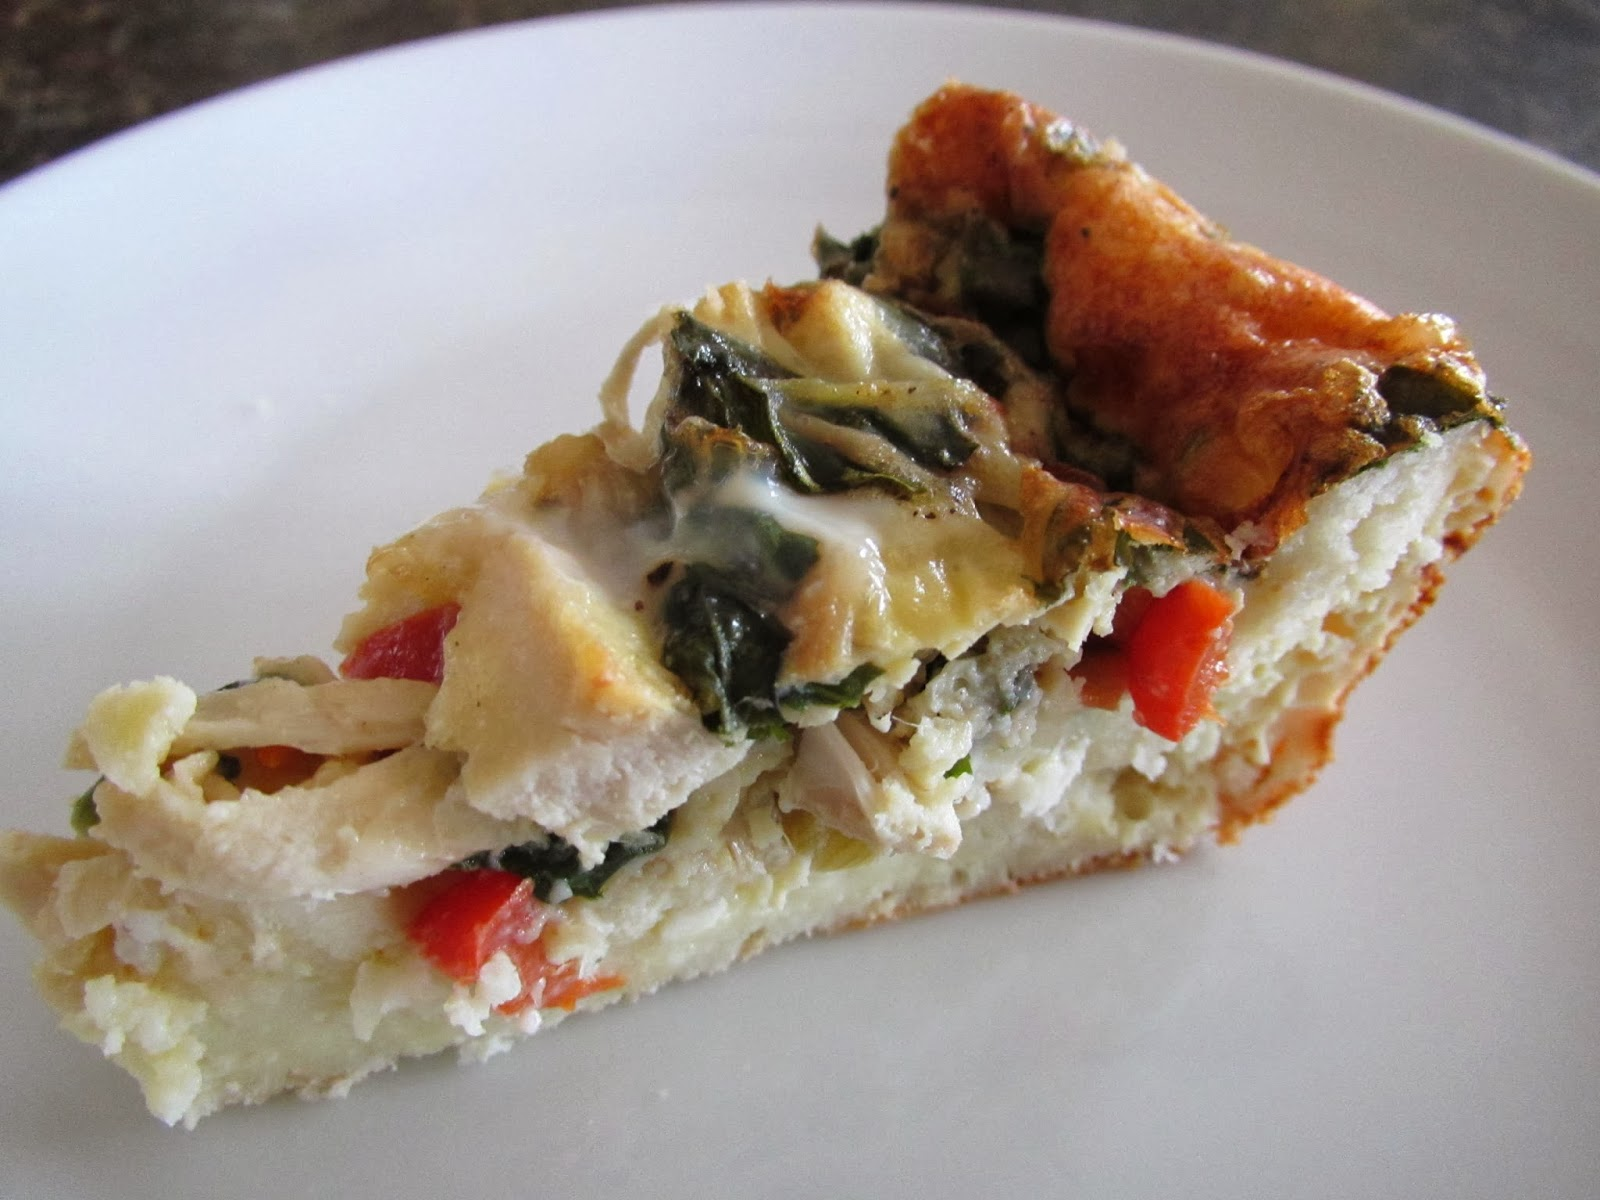 Gluten Free Chicken Spinach and Feta Quiche with Buttermilk Biscuit Crust